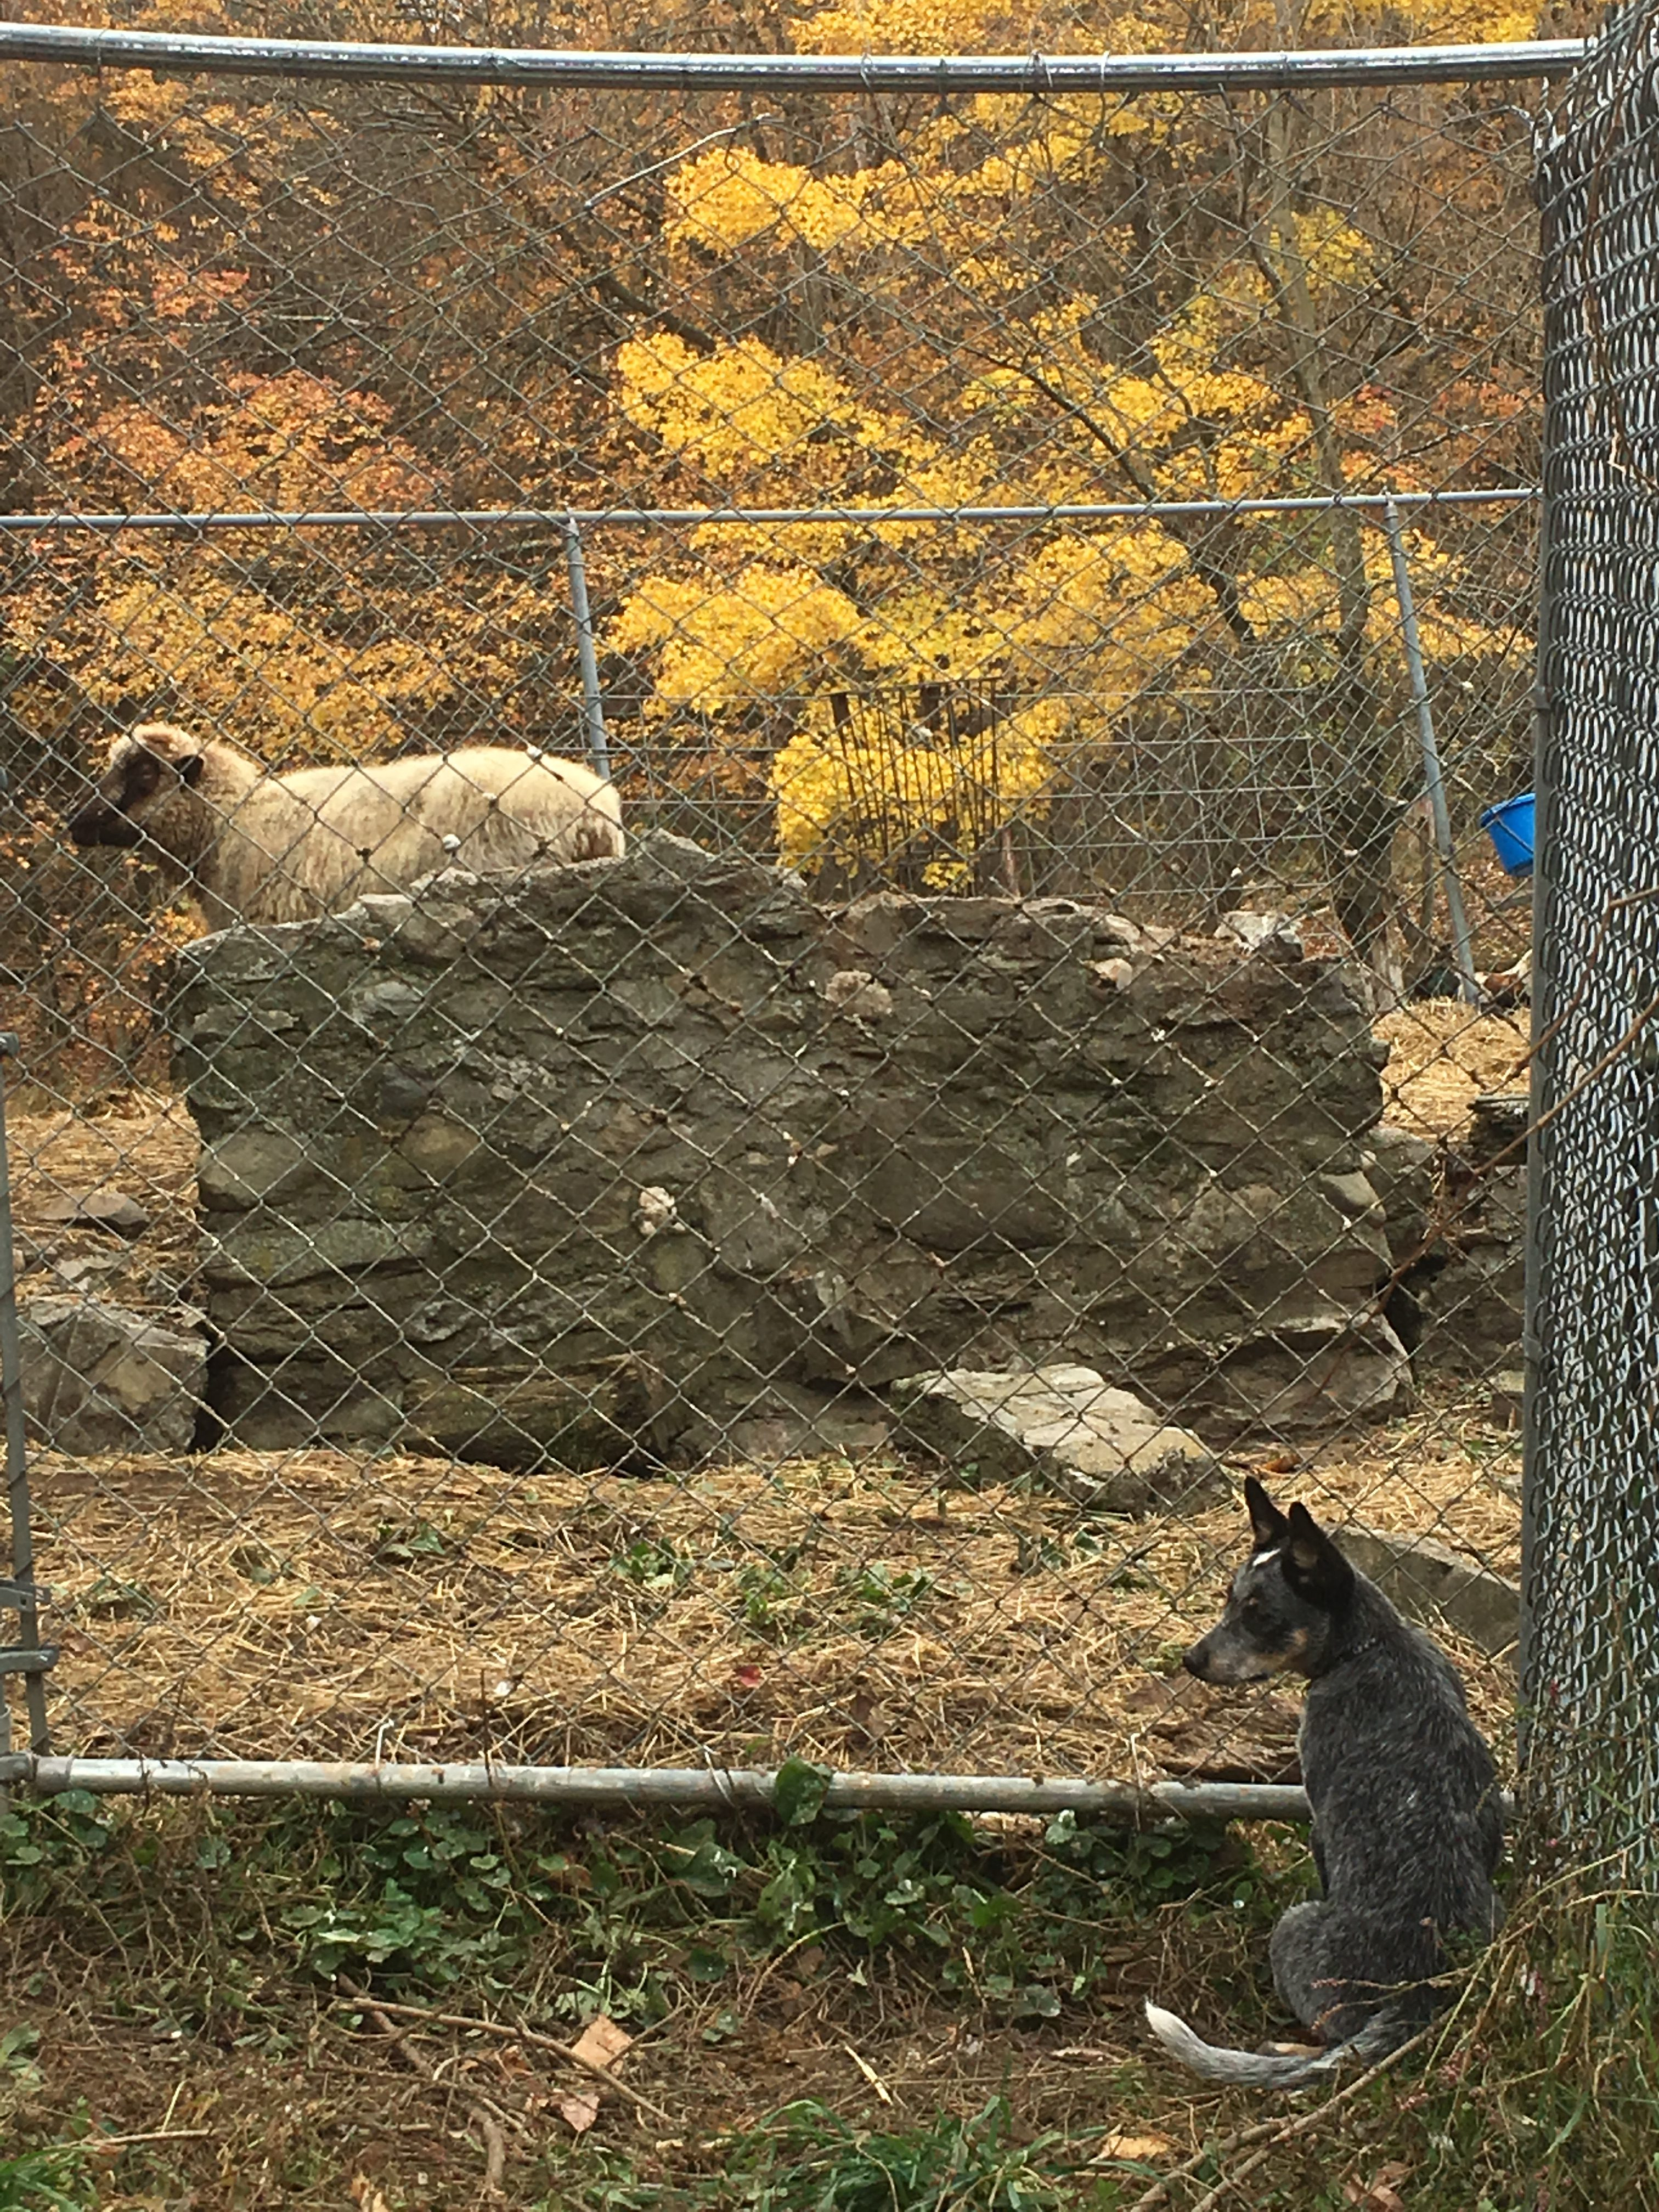 photo of dog watching sheep through a fence